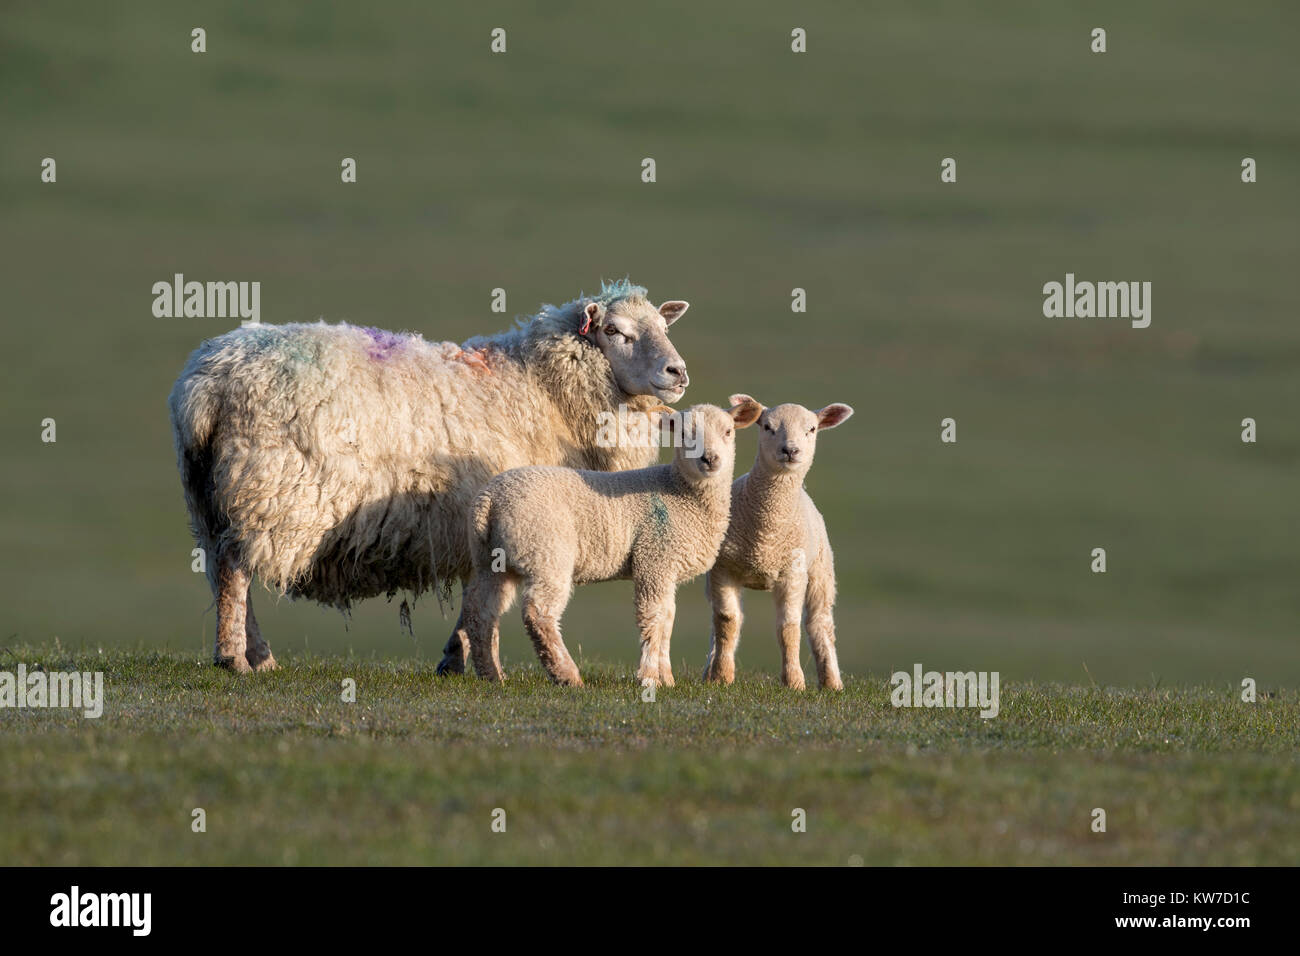 Sheep; Ewe and Lambs Newton; Lancashire; UK - Stock Image